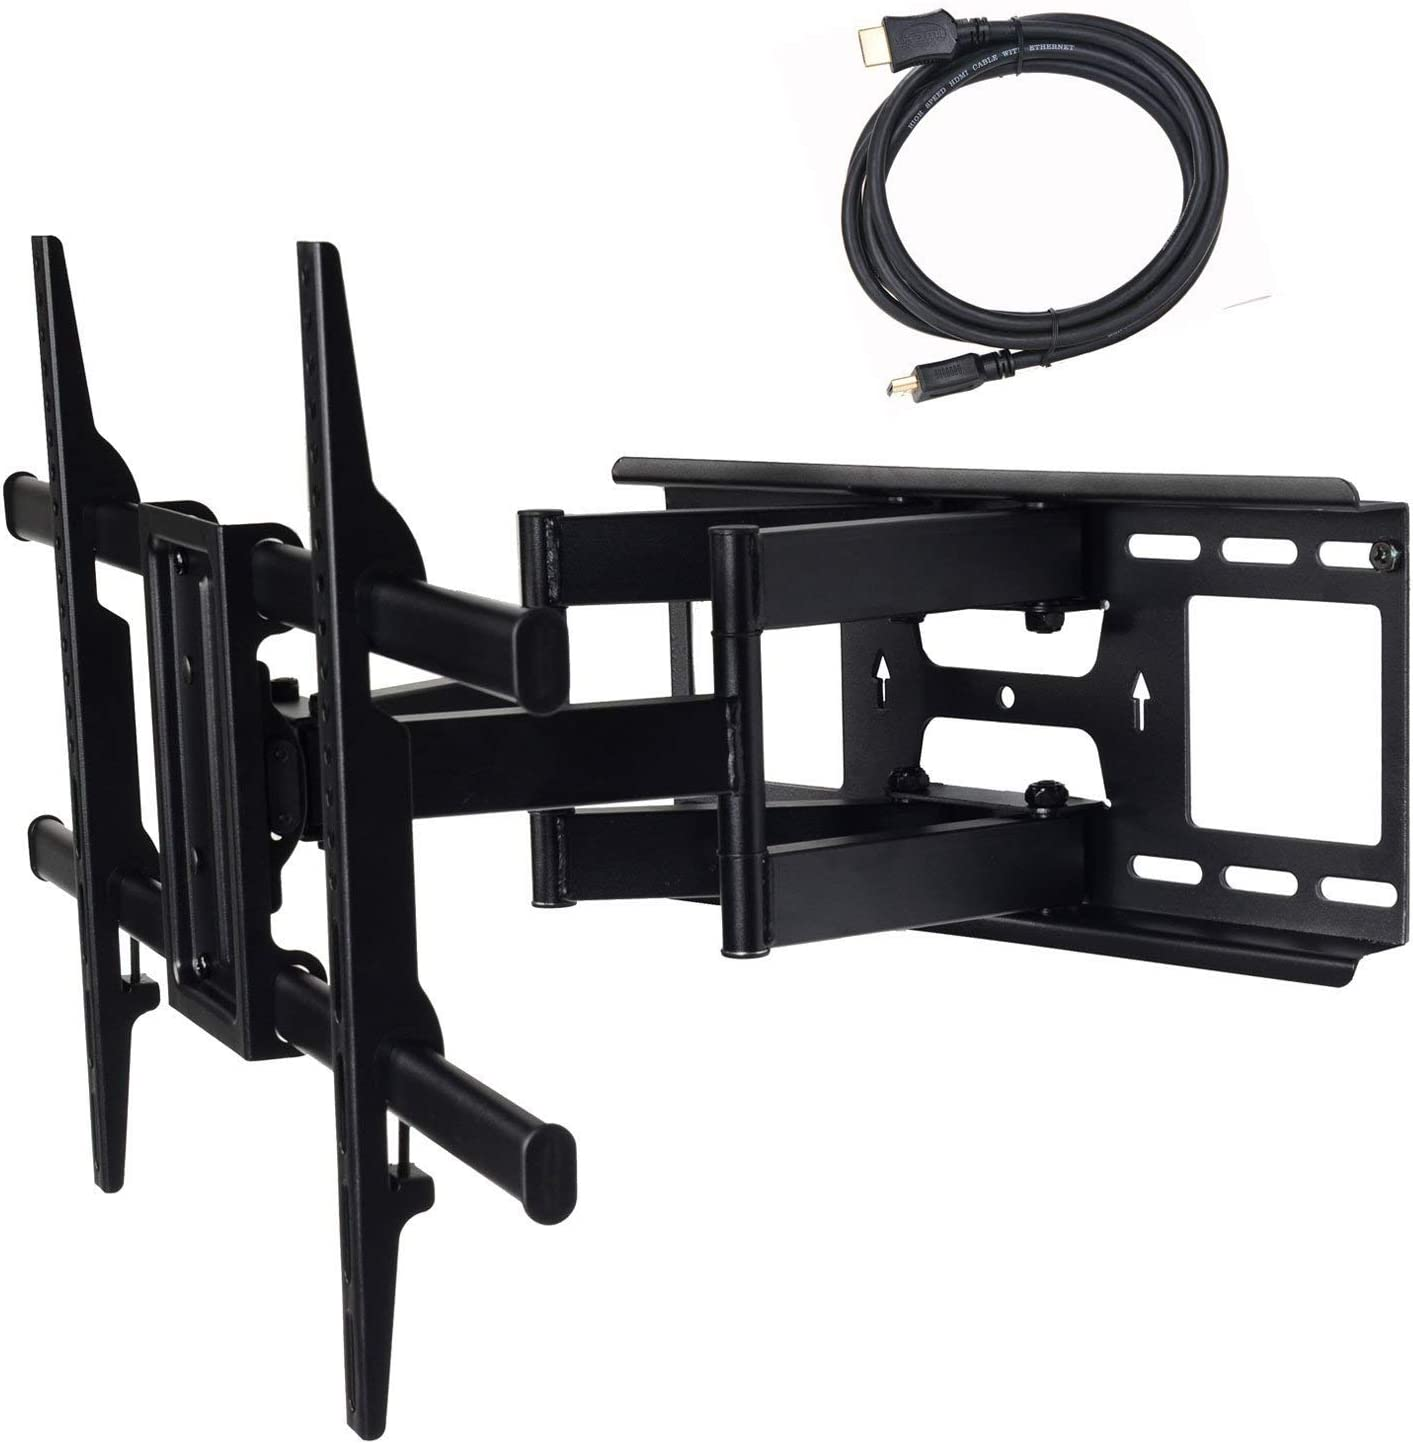 VideoSecu Articulating TV Wall Mount Most for Ranking TOP4 Import 32- Dual Arm